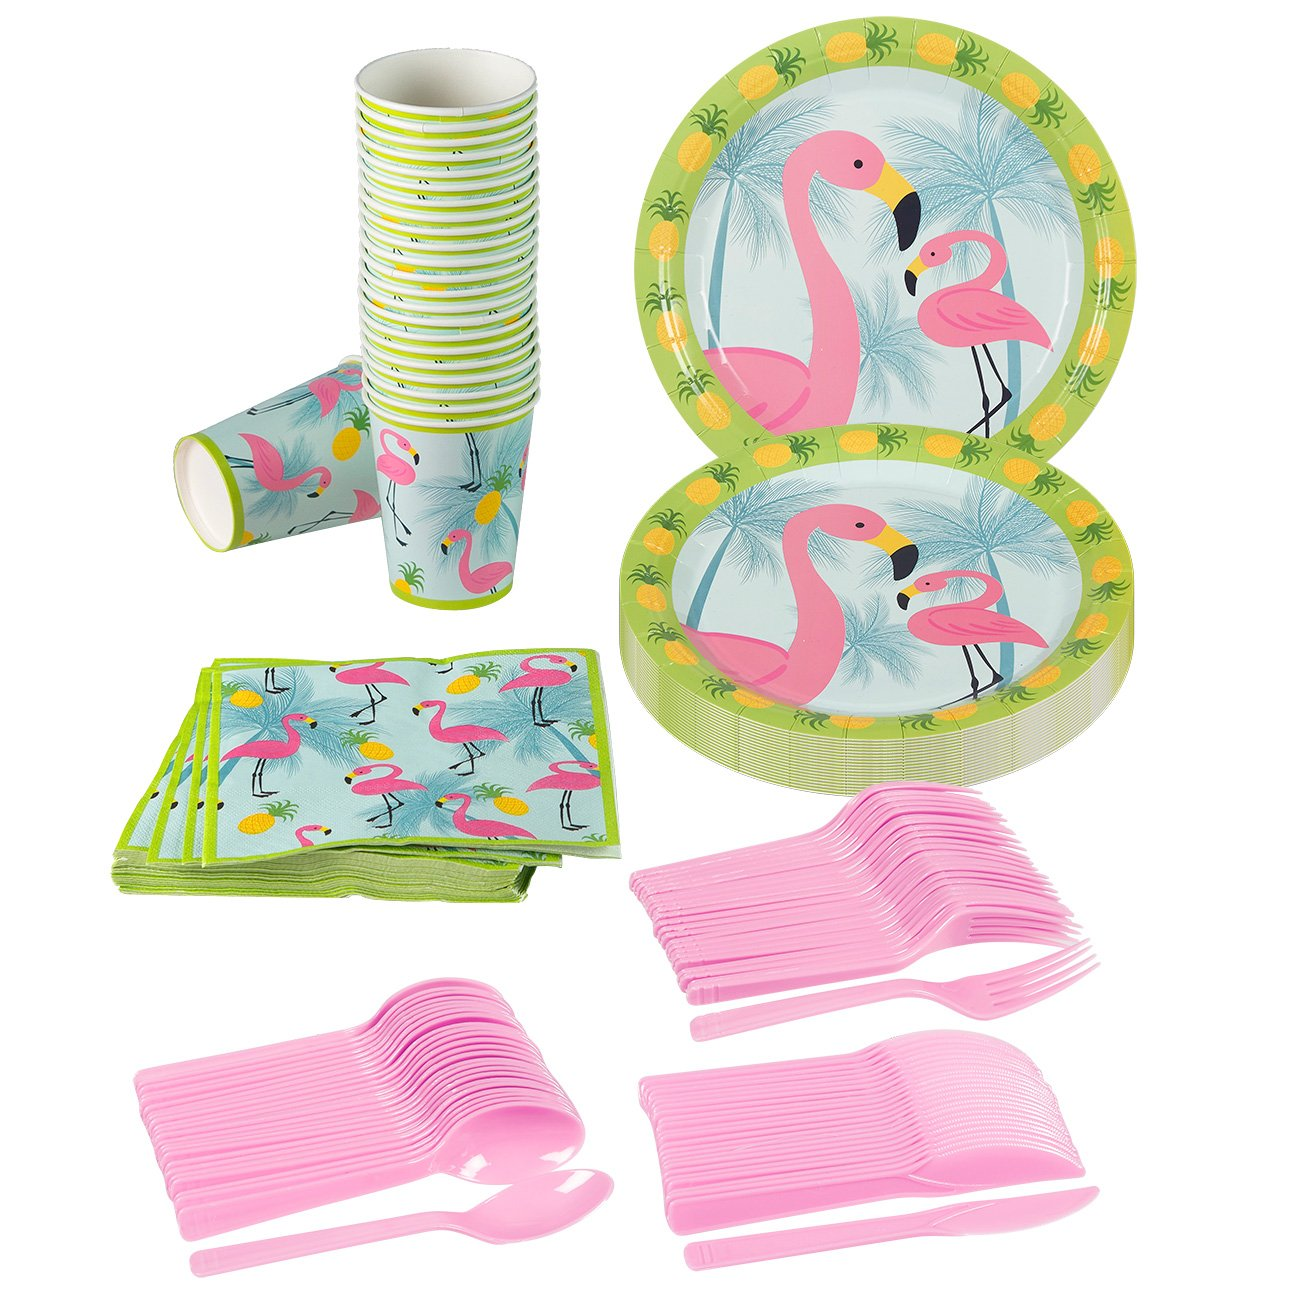 Juvale Flamingo Party Supplies – Serves 24 – Includes Plates, Knives, Spoons, Forks, Cups and Napkins. Perfect Tropical Birthday Party Pack for Kids Flamingo Themed Parties. by Juvale